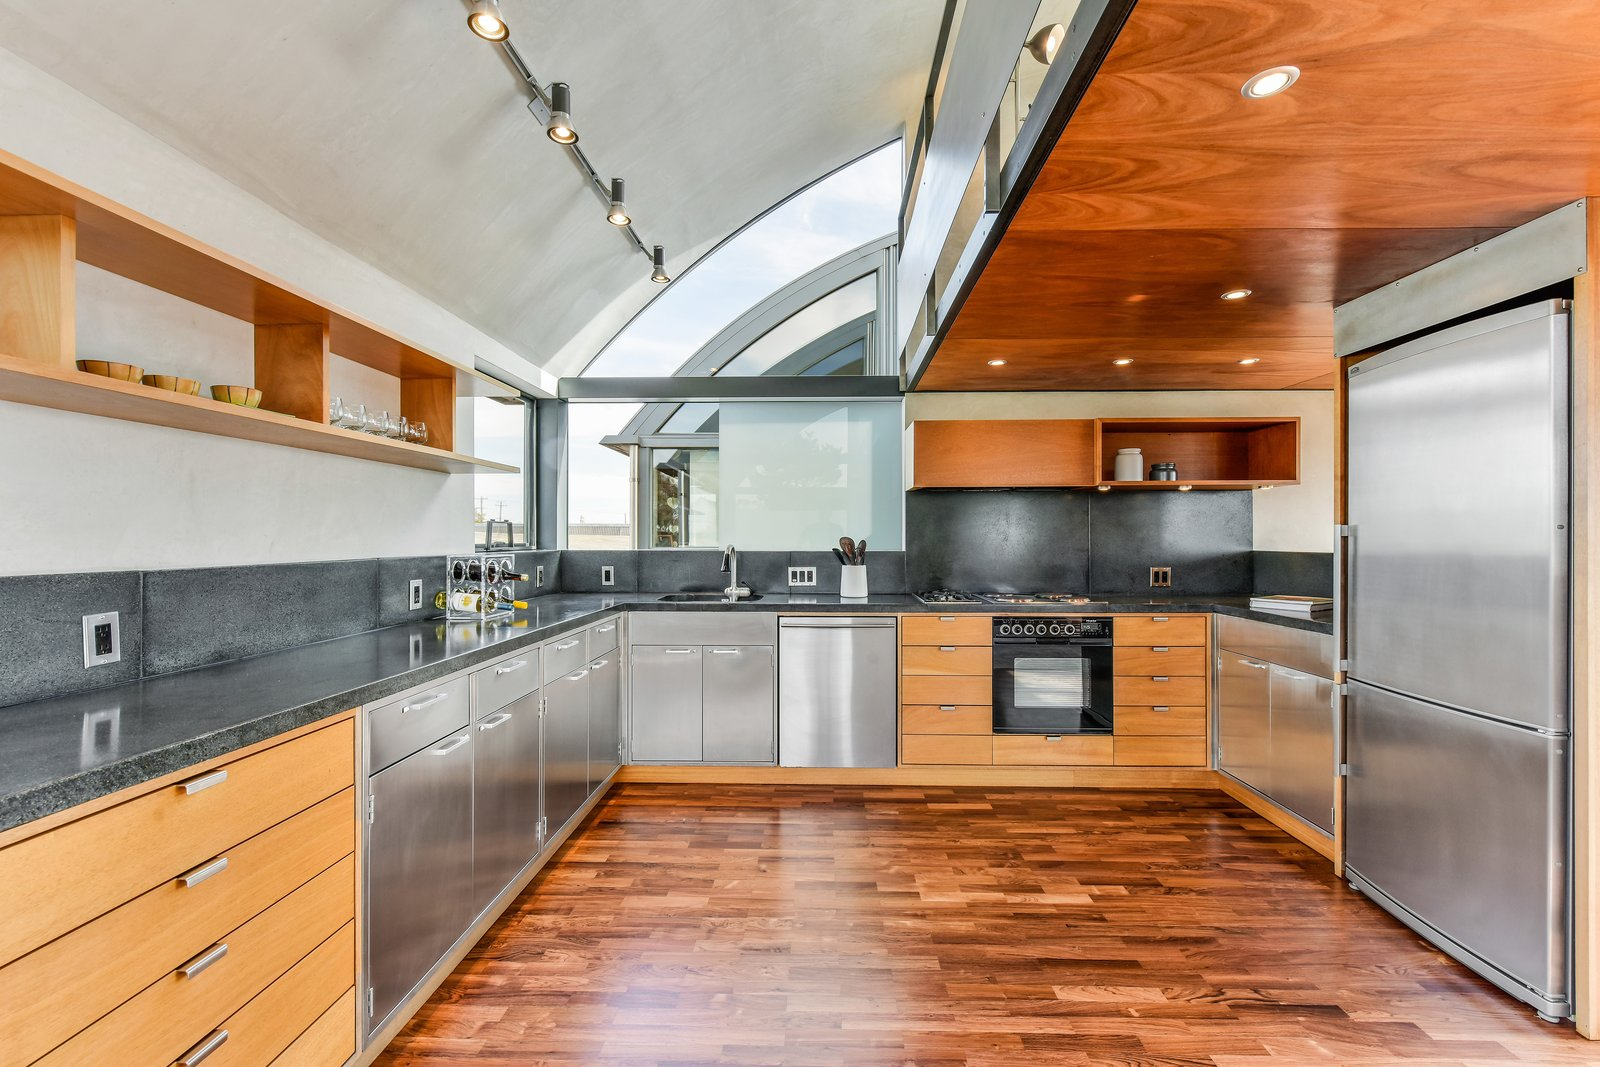 Kitchen, Medium Hardwood, Concrete, Wood, Concrete, Track, Ceiling, Refrigerator, Wall Oven, Range, Range Hood, Cooktops, Dishwasher, and Drop In Level 3 kitchen  Best Kitchen Concrete Cooktops Ceiling Refrigerator Dishwasher Drop In Photos from The Rempel Temple